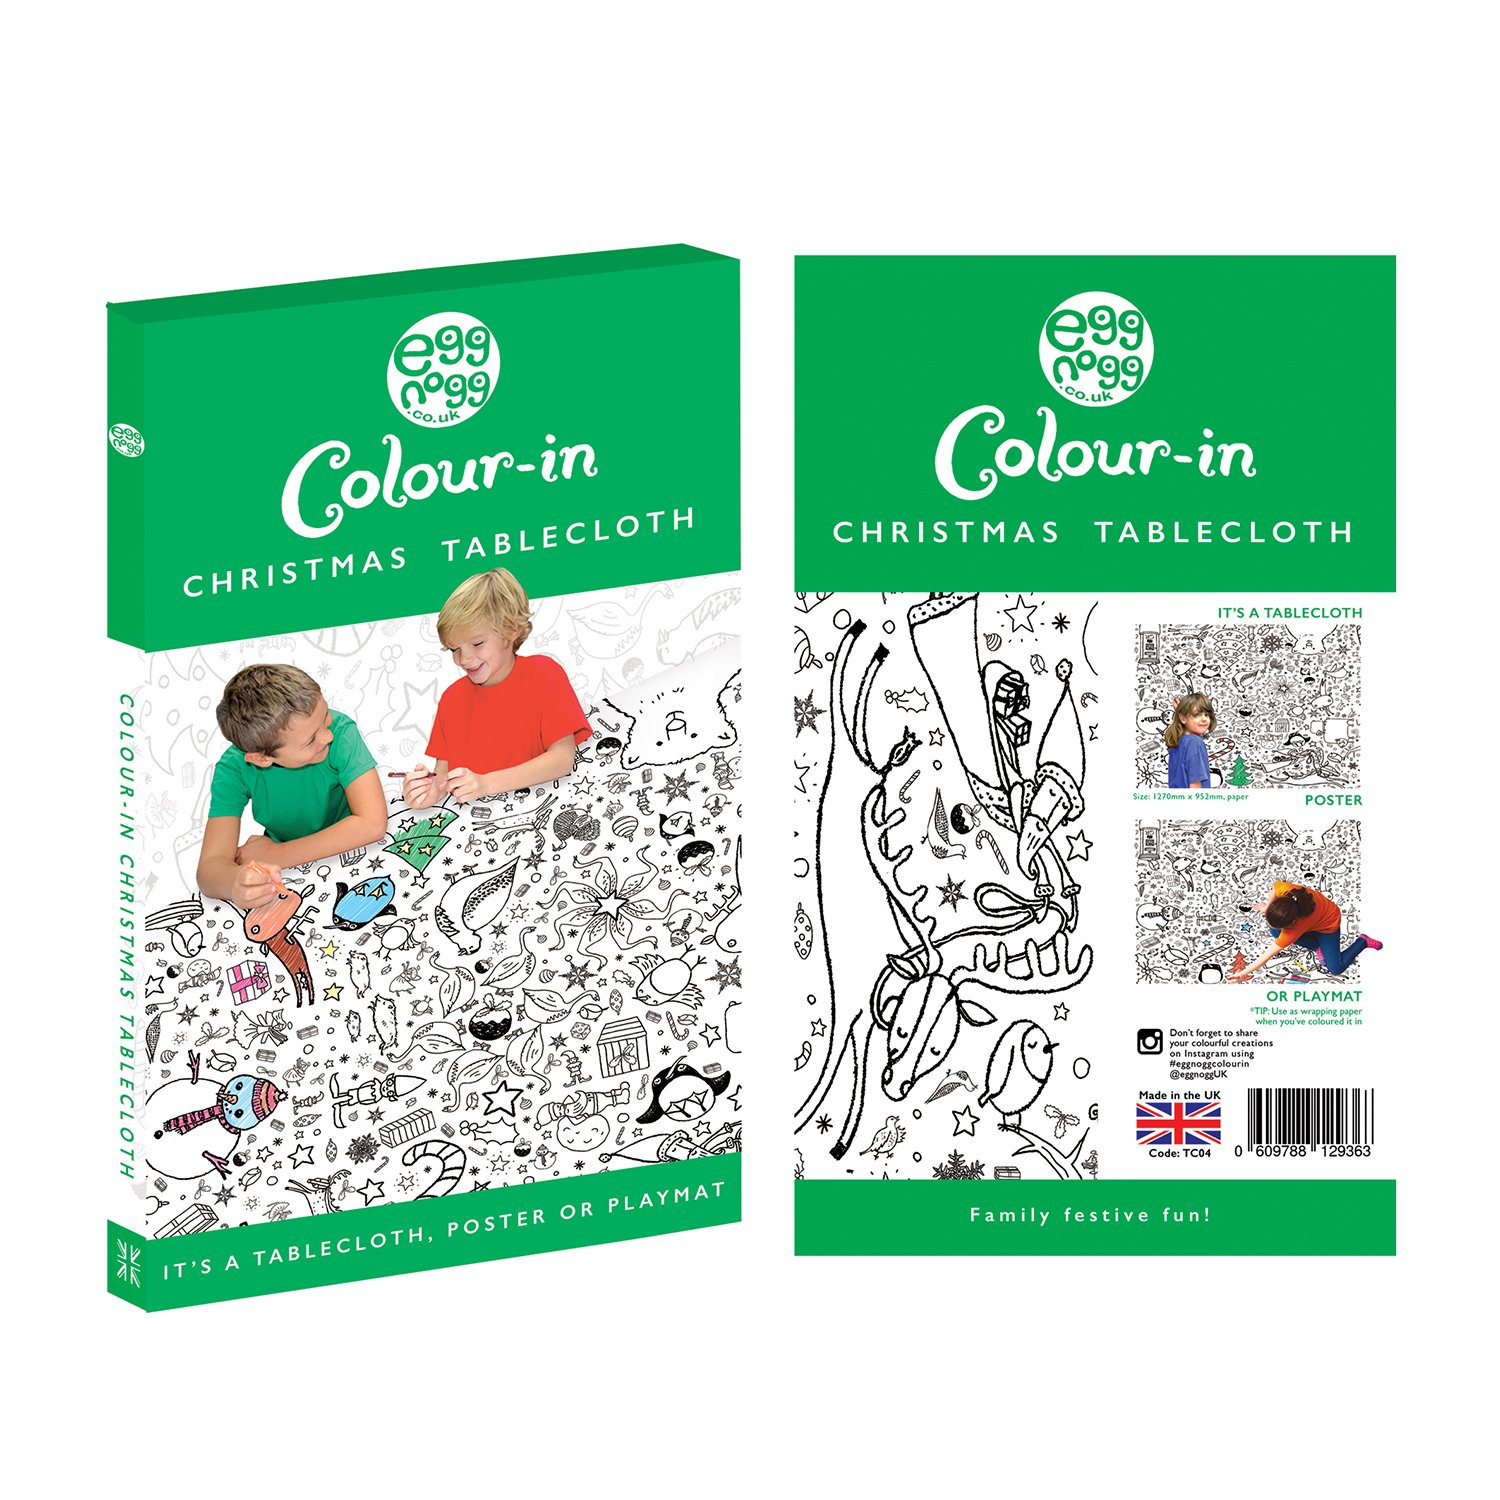 Amazon.com: Colour-in Tablecloth - Christmas (TC04): Toys & Games